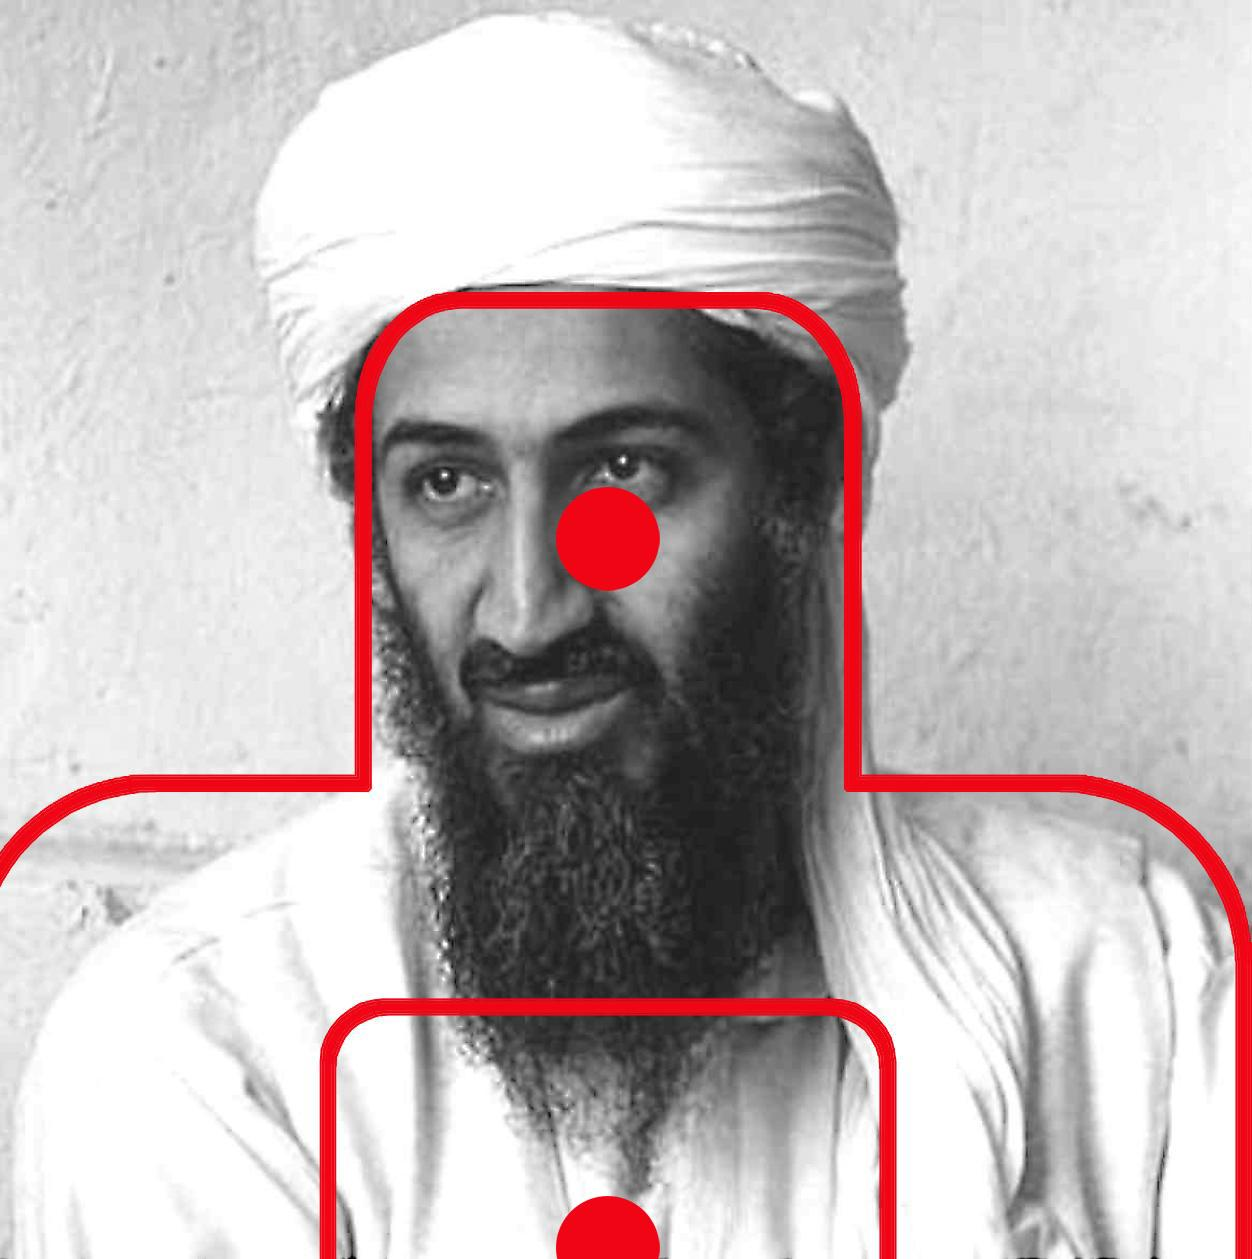 KintlaLake: 'The United States has conducted an operation ... Osama Bin Laden Targets For Shooting